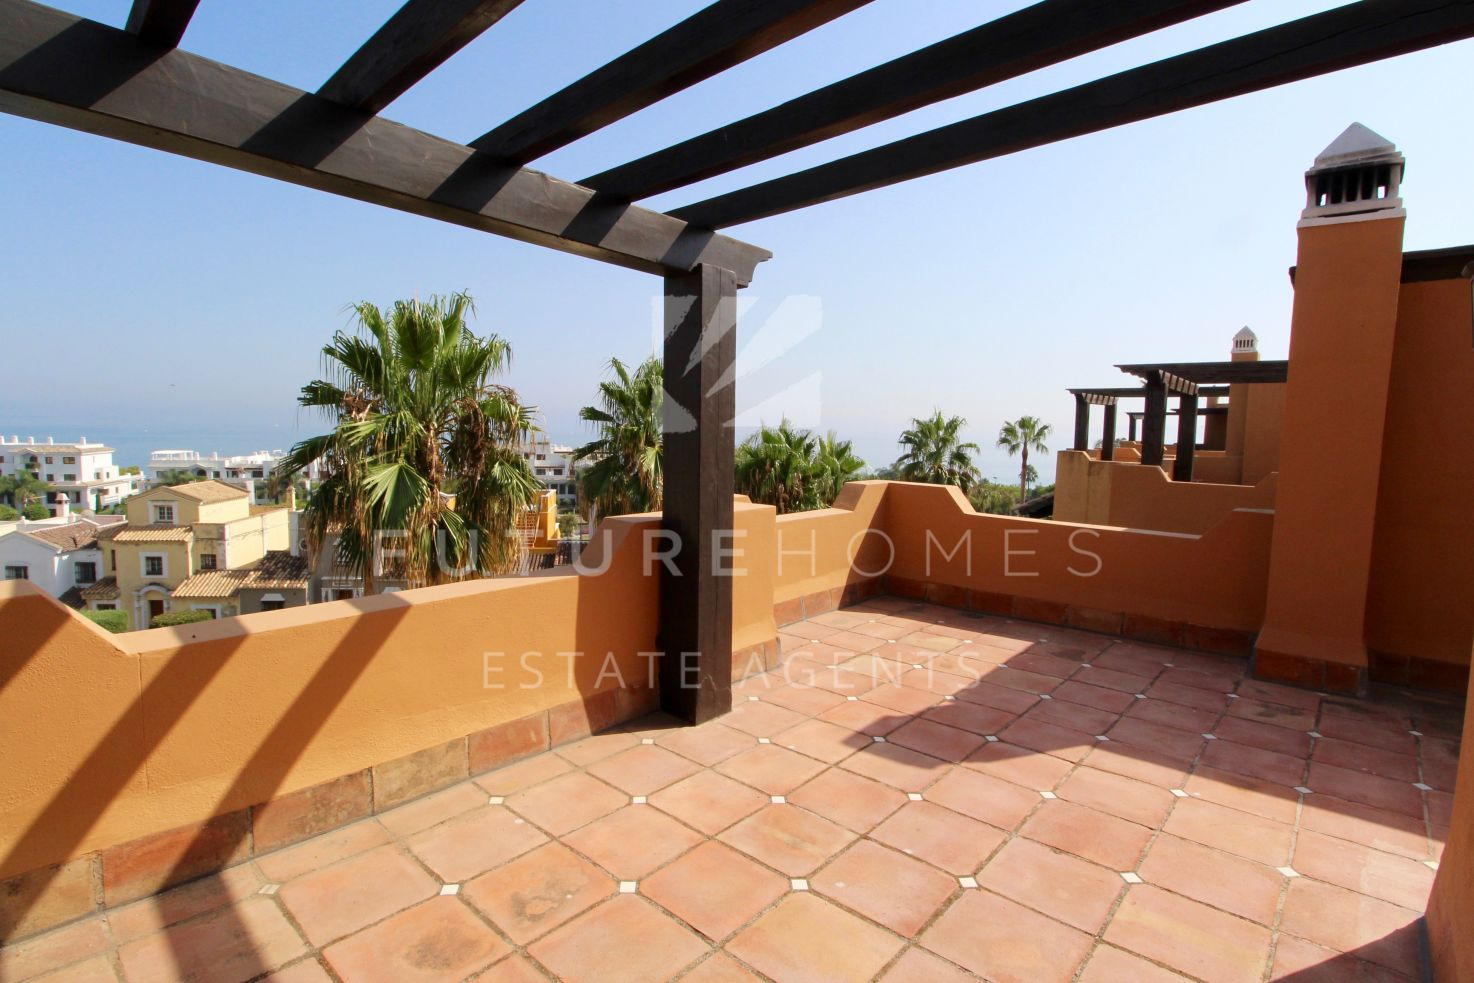 Superb townhouse in the highly sought-after community of Altos de Guadalobon, Seghers, next to Cristo beach Estepona